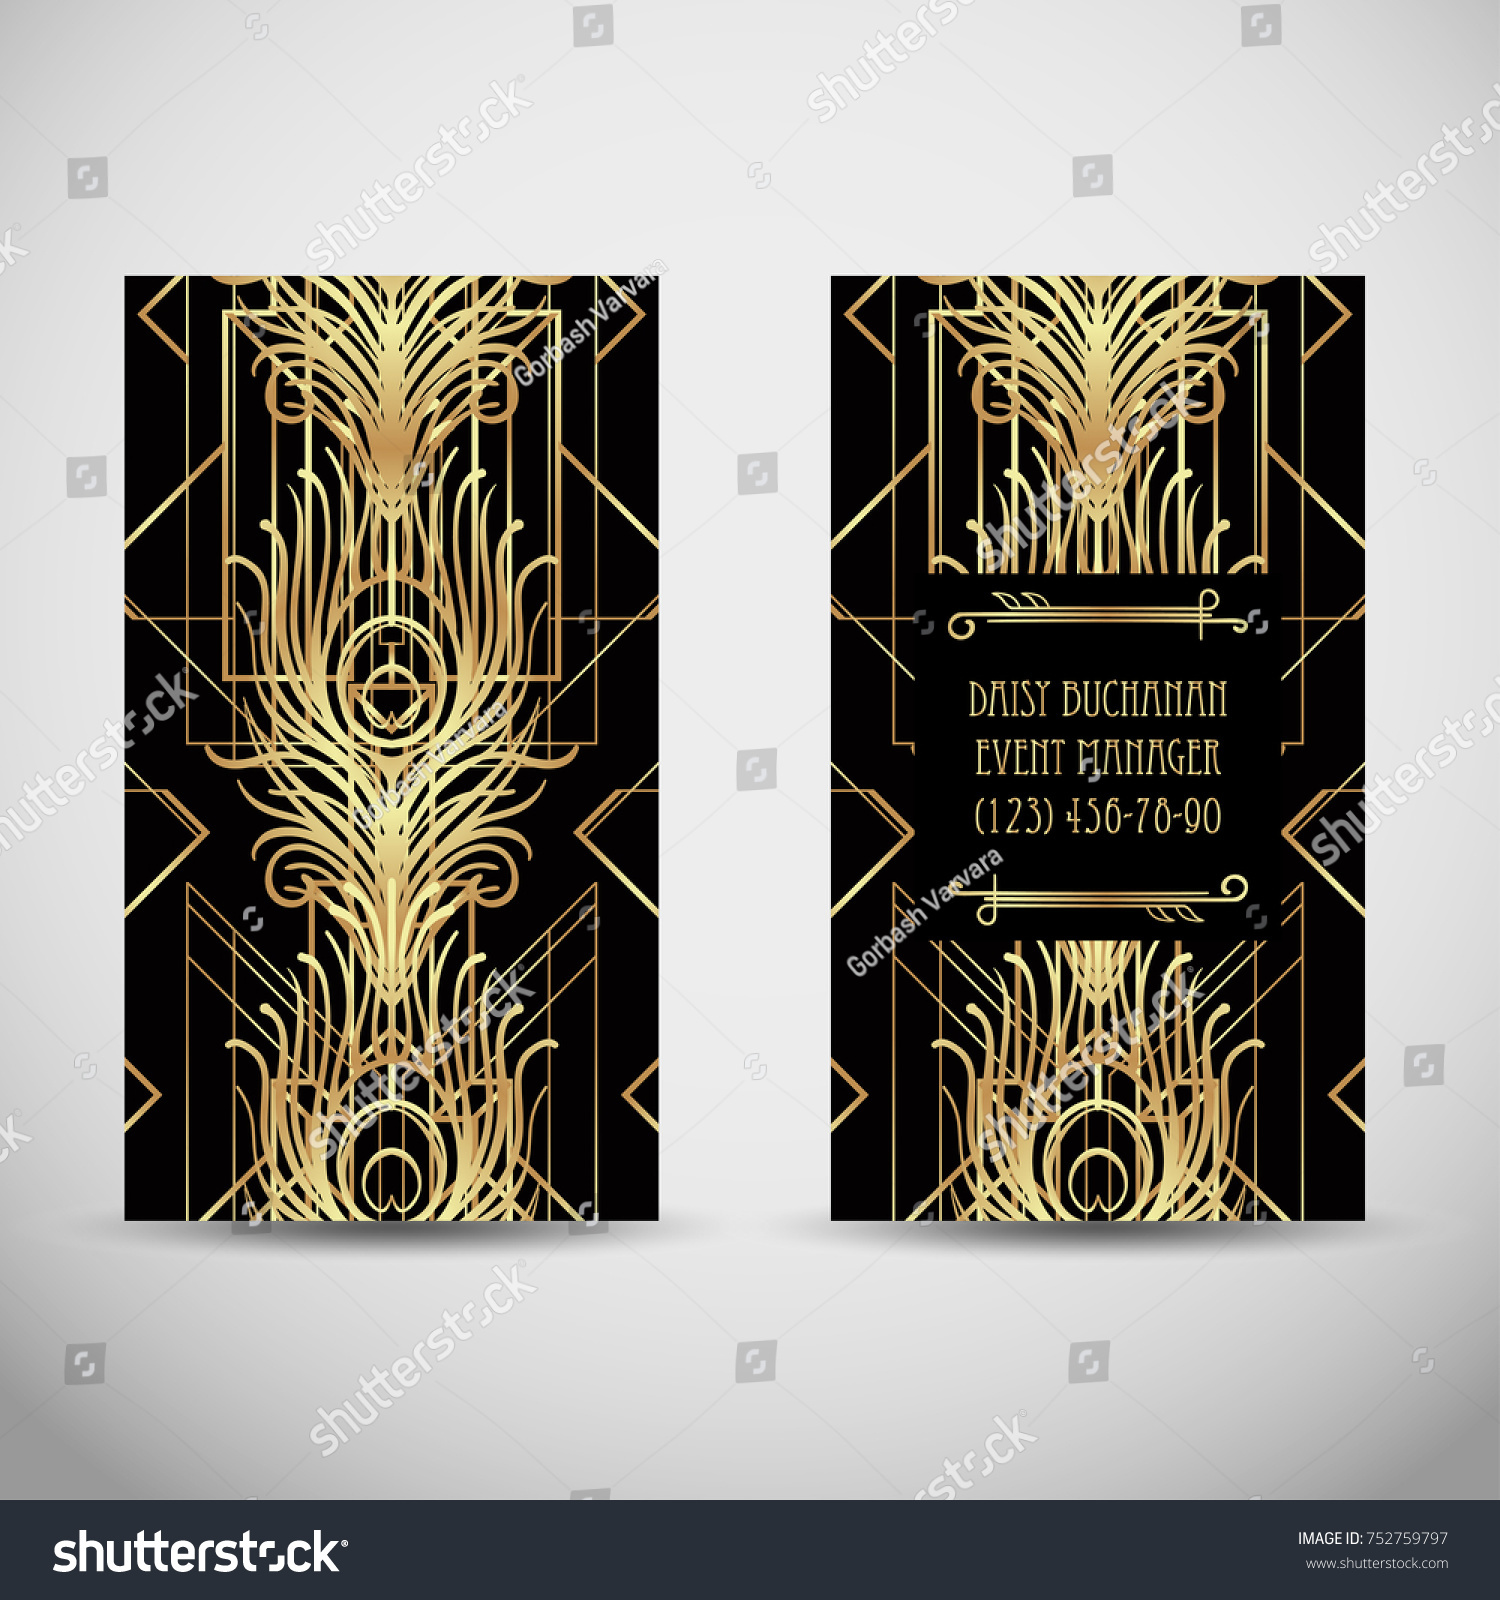 Art Deco Style Business Card Sample Stock Vector 752759797 ...